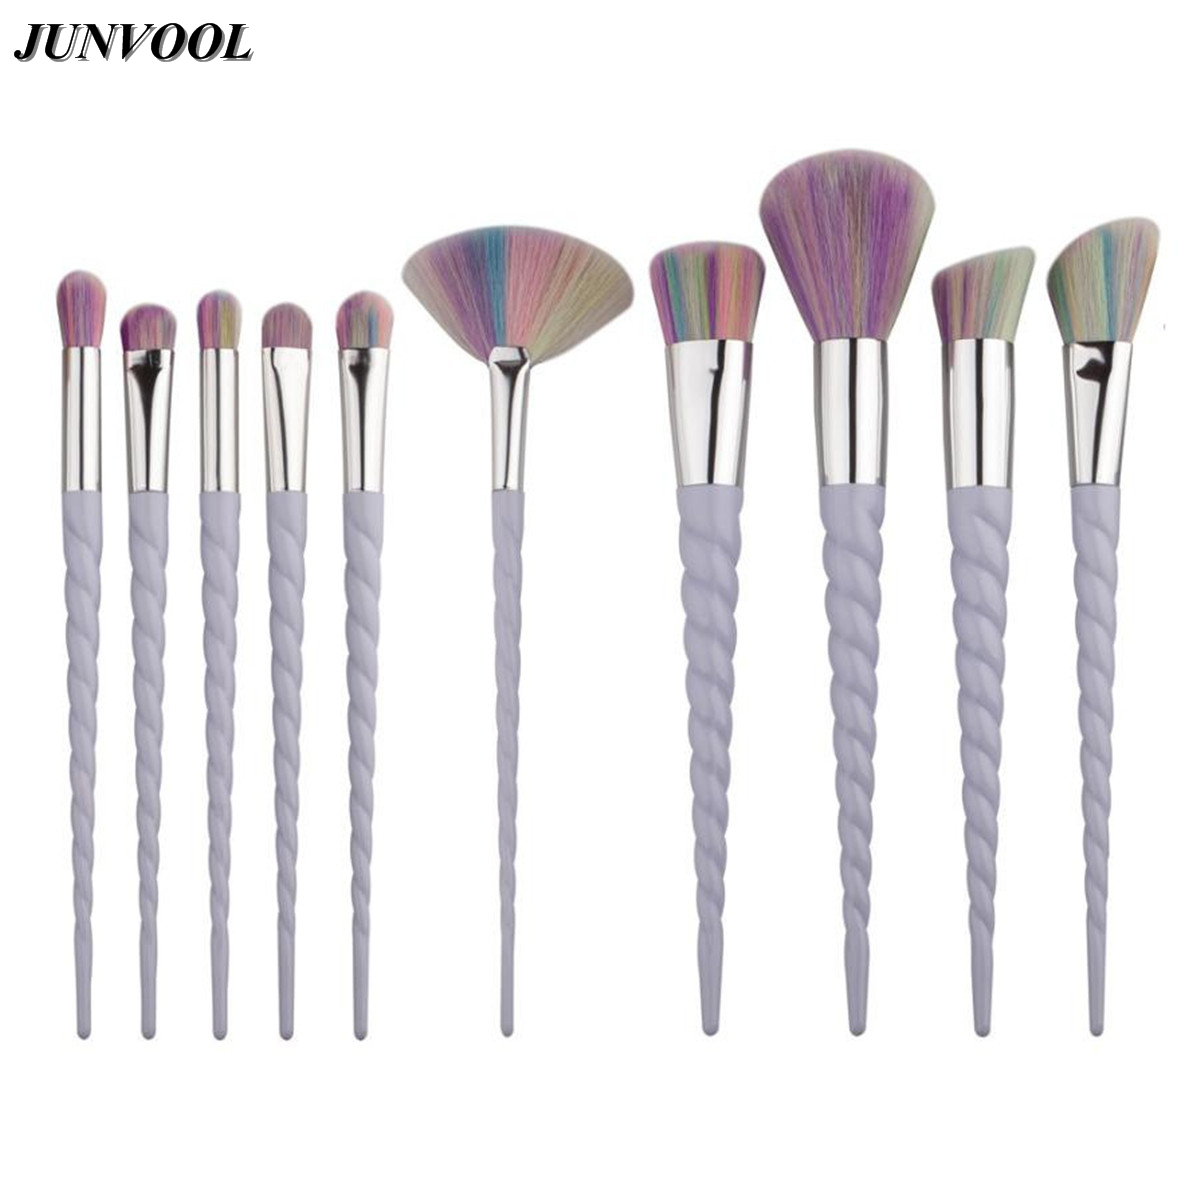 Unicorn brushes makeup ebay